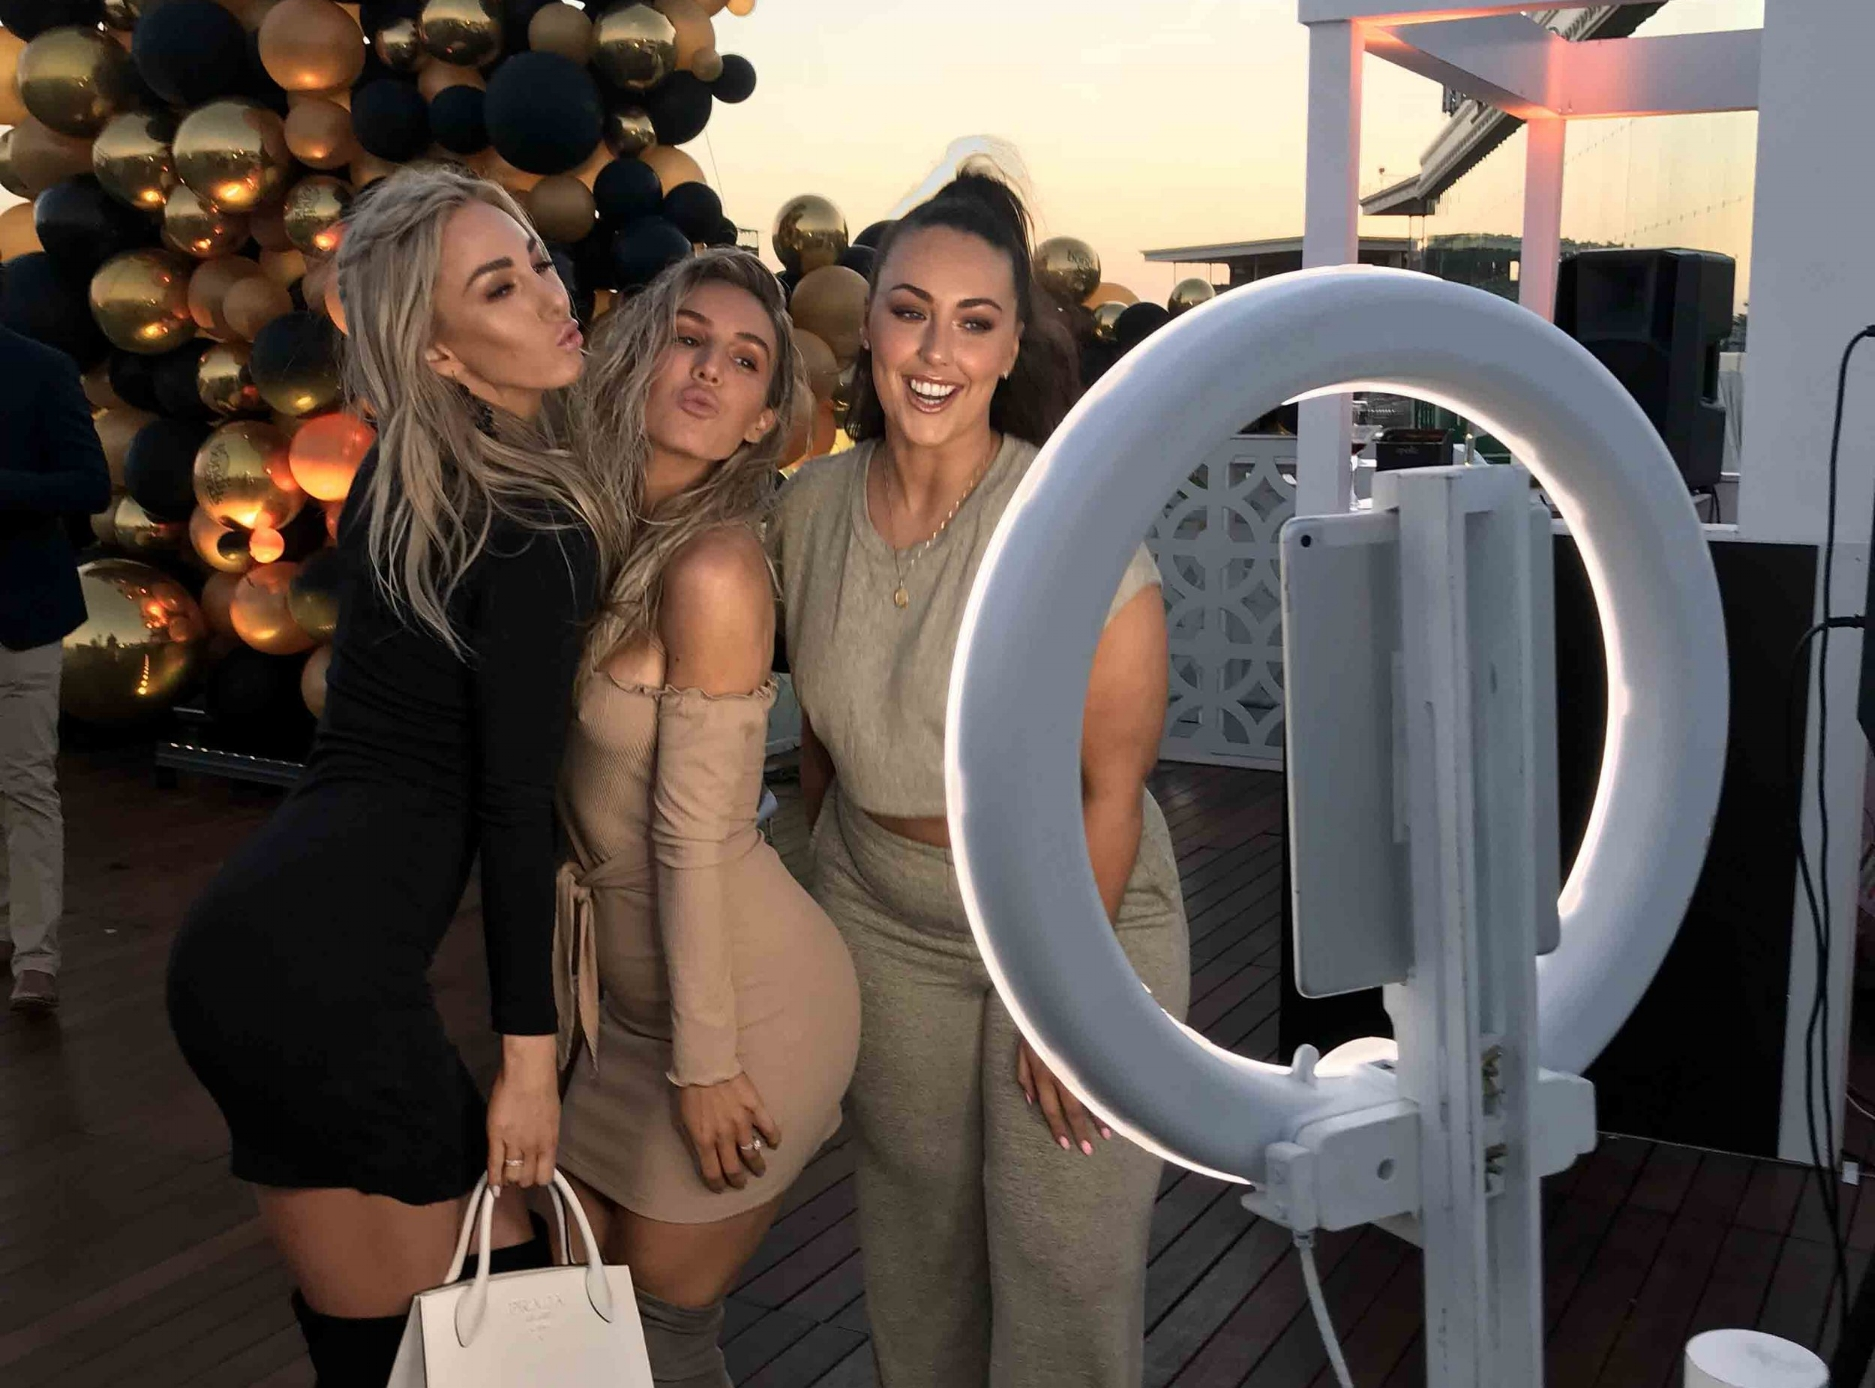 Bondi Sands     Venue: Caulfield Racecourse    SGB Highlights: Ashy Bines and co absolutely loving the booth…